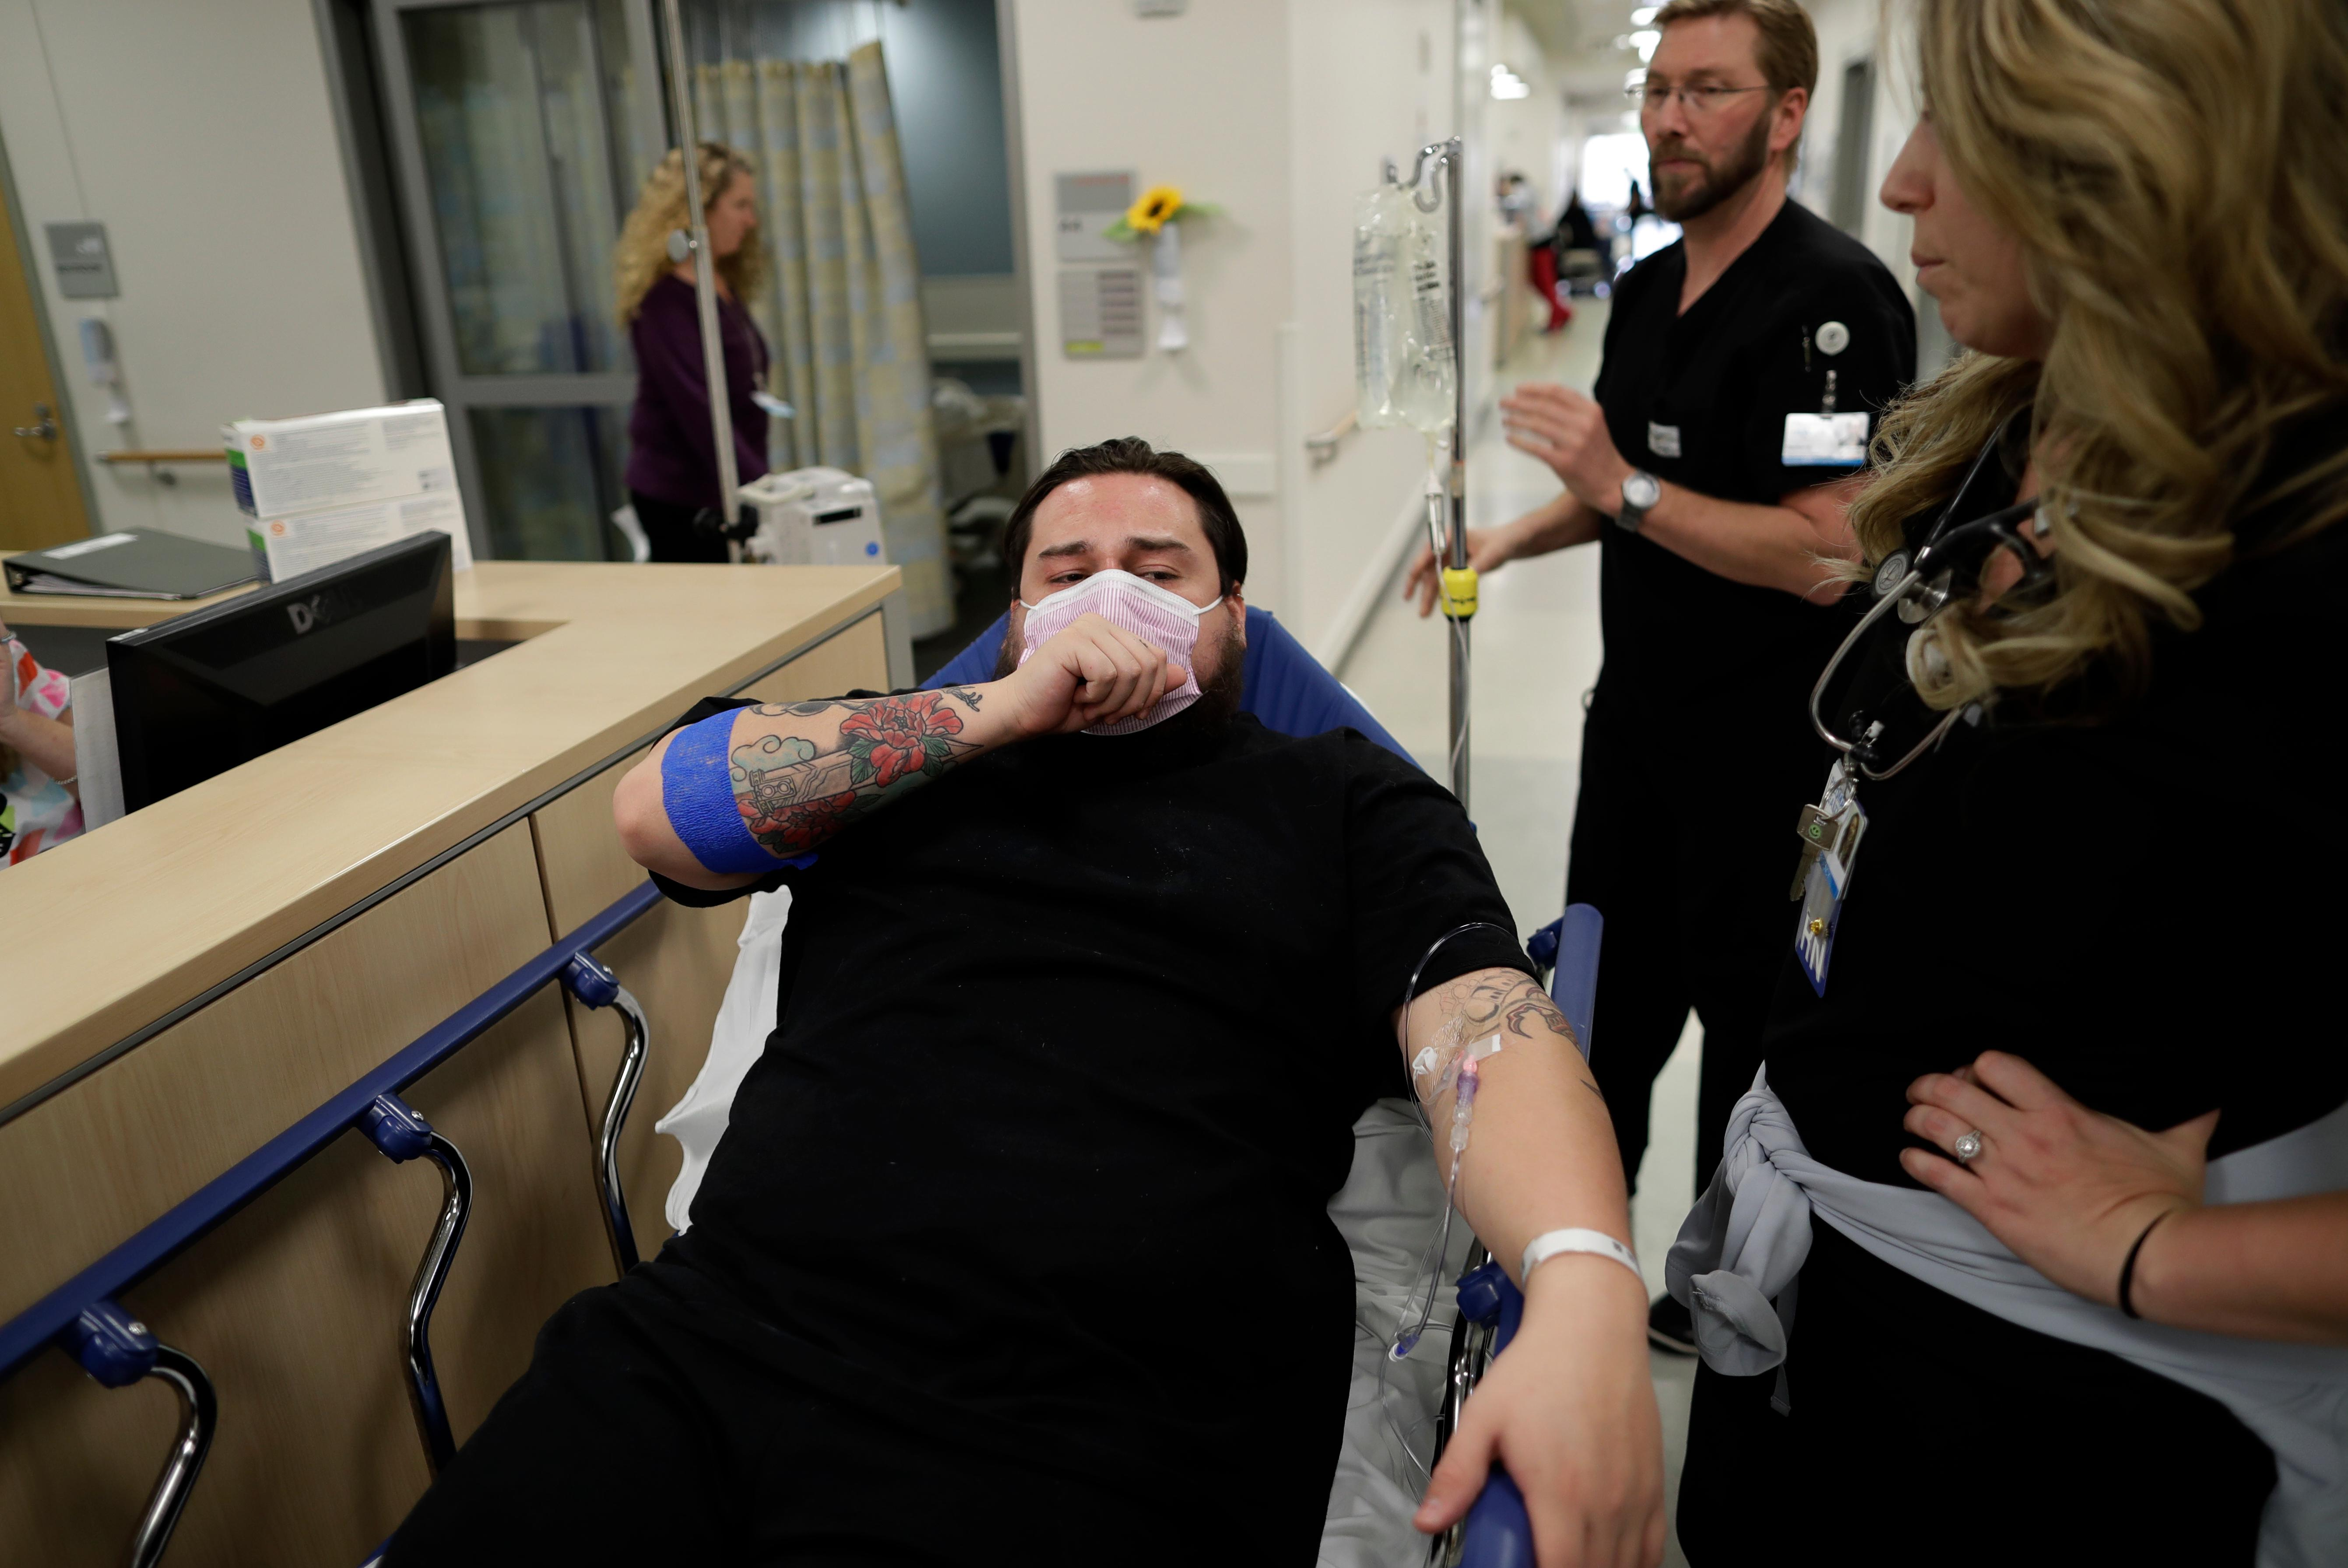 In this Jan. 10, 2017 image, Donnie Cardenas recovers from the flu at the Palomar Medical Center in Escondido, Calif., on Wednesday, Jan. 10, 2018. The San Diego County resident said he was battling a heavy cough for days before a spike his temperature sent him into the emergency room. (AP Photo/Gregory Bull)